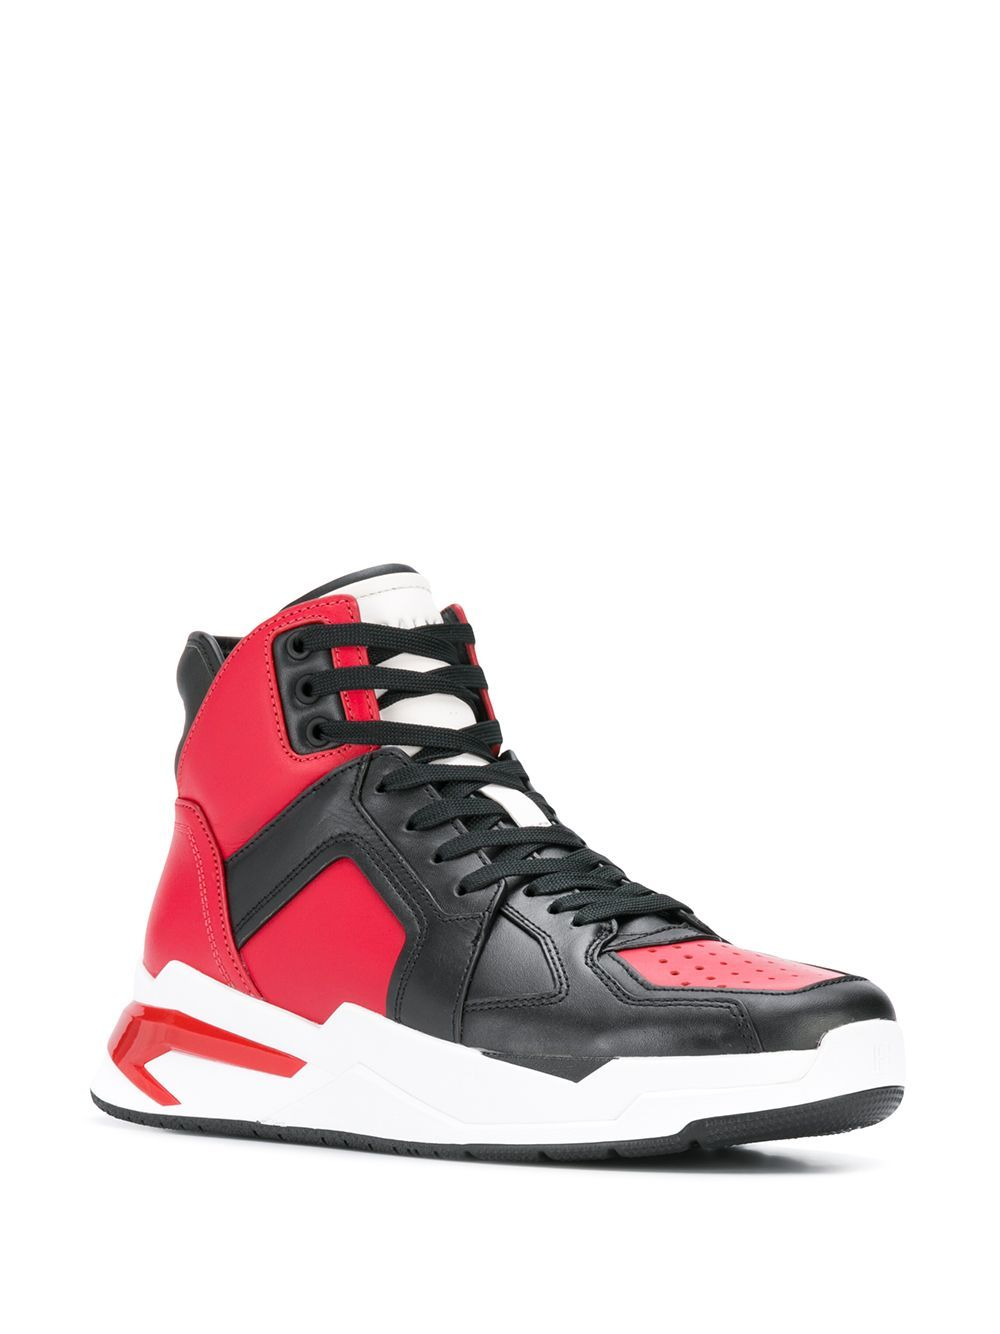 Balmain B-BALL sneakers black/red